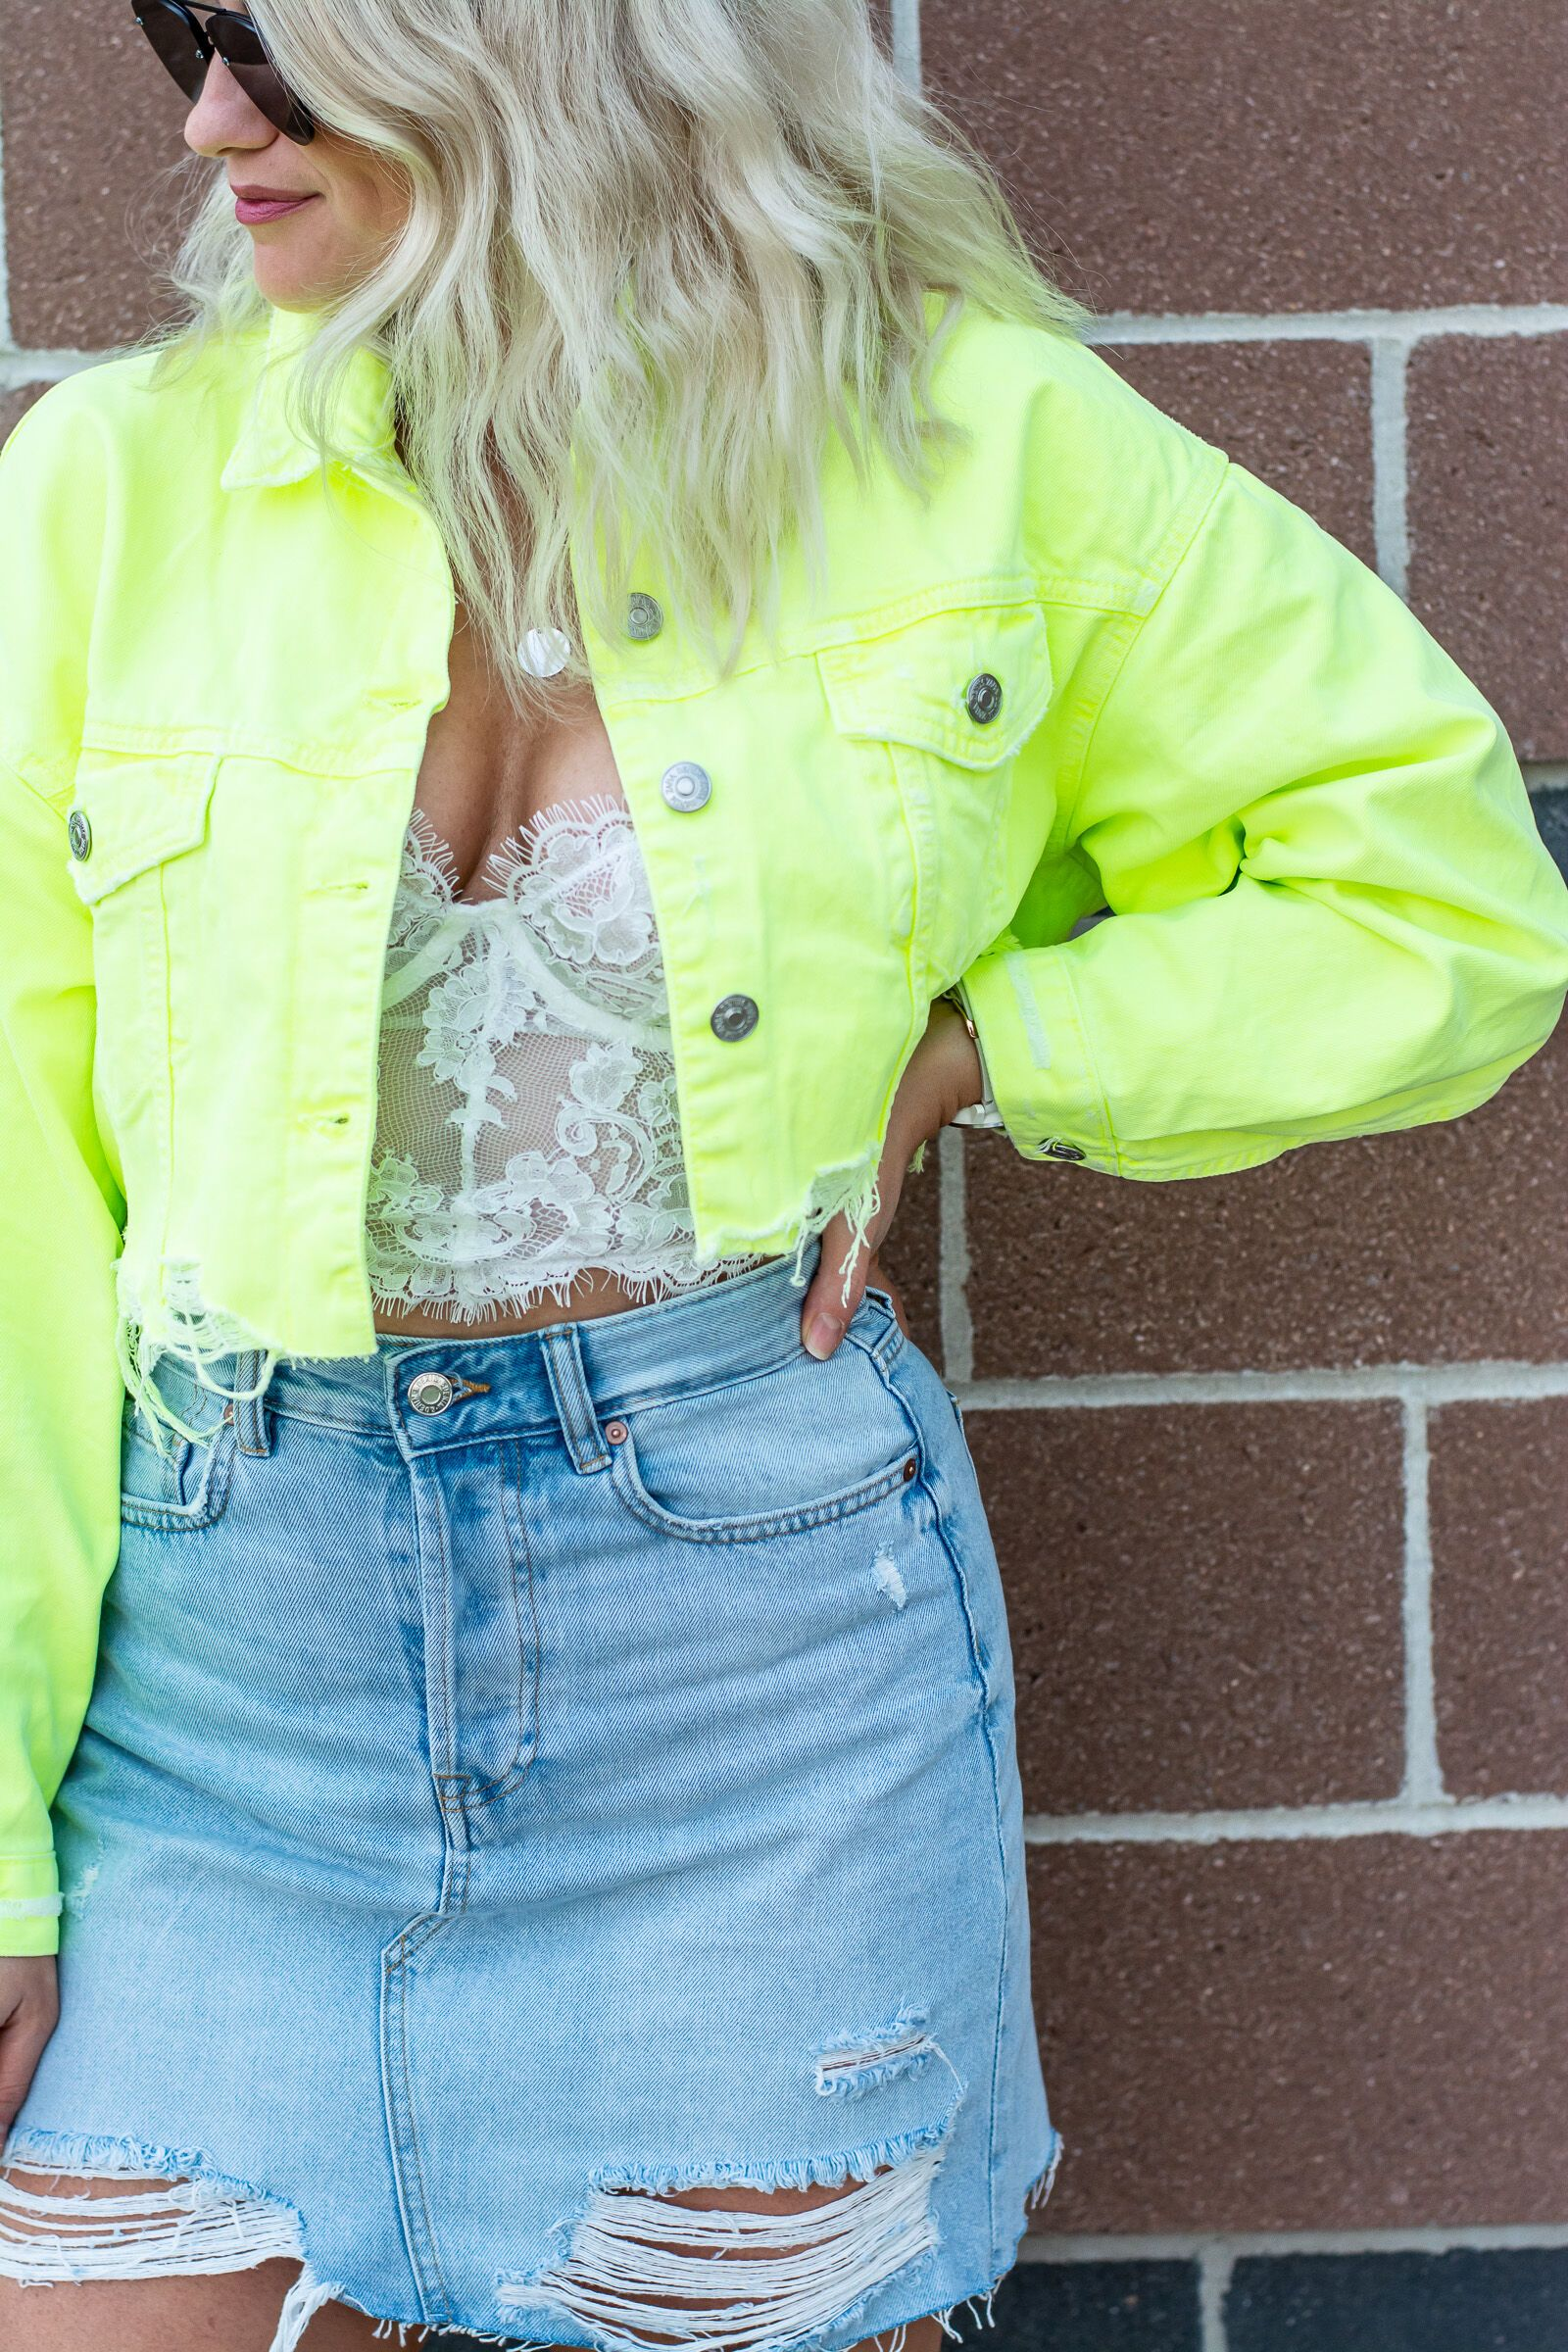 Neon will give you an unforgettable look